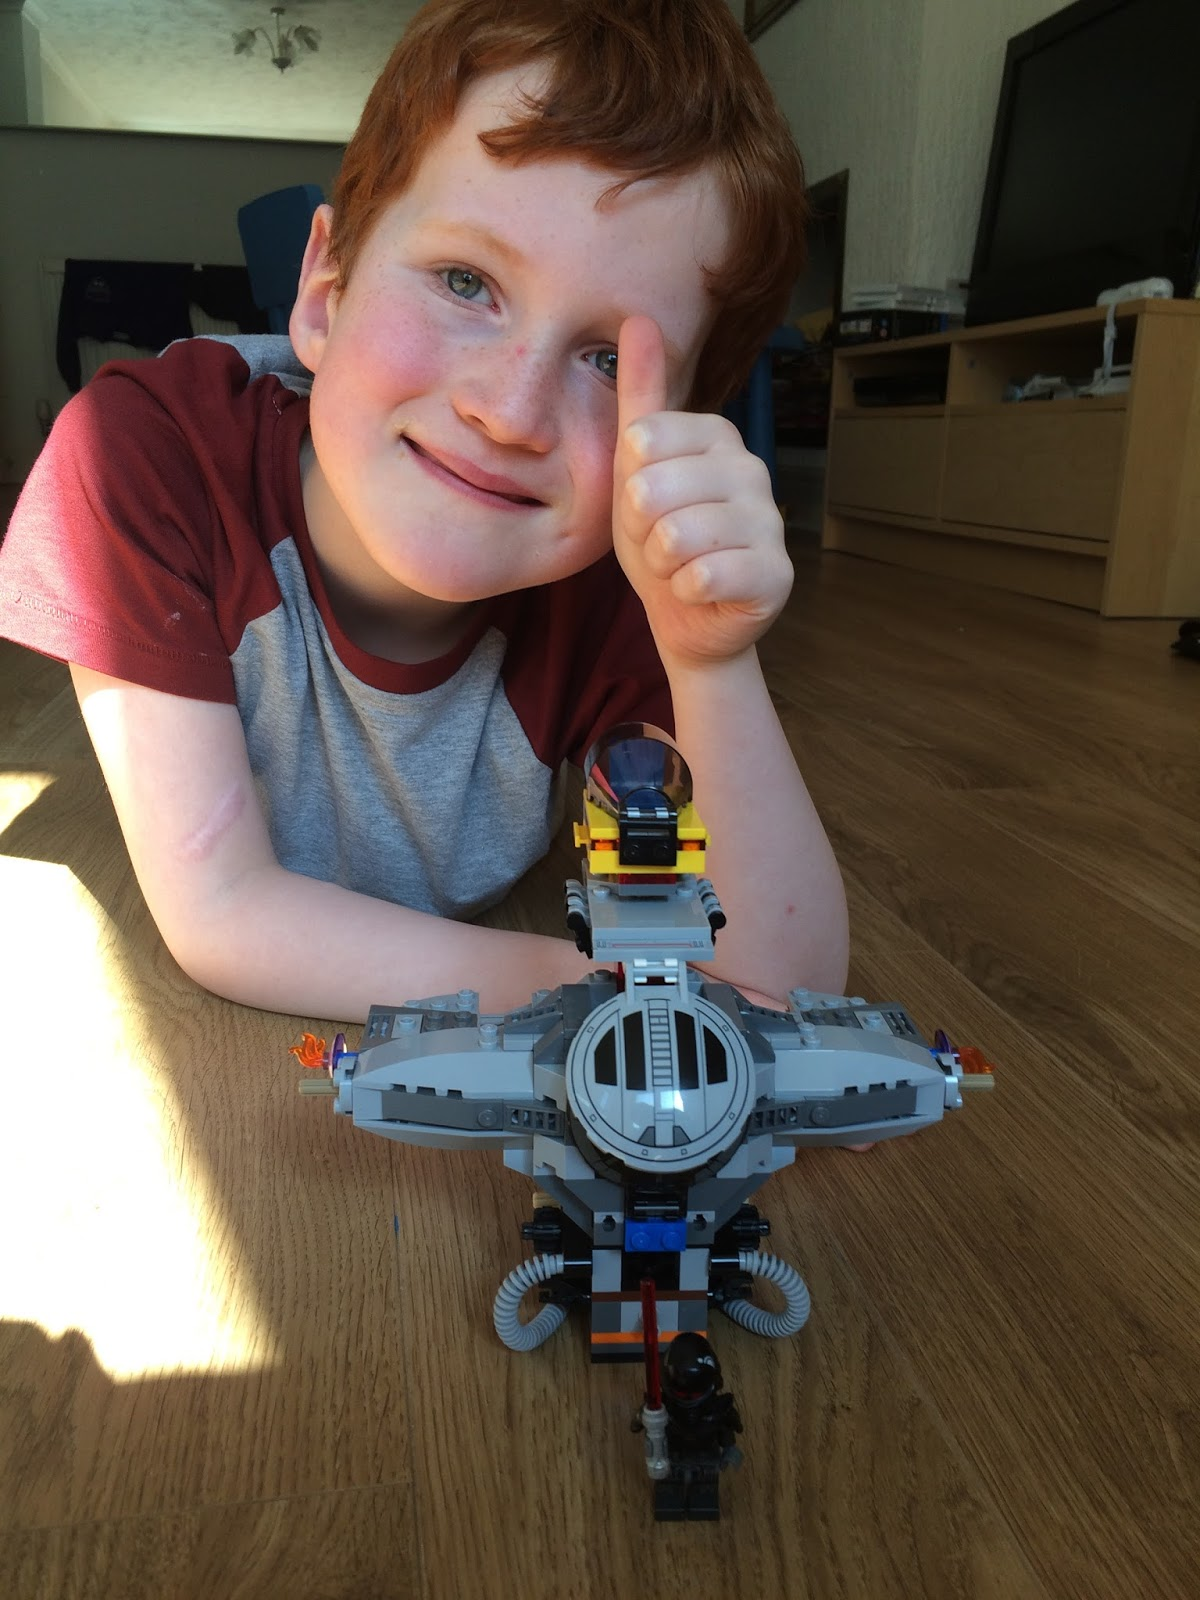 Ieuan Hobbis' Latest Lego Creation